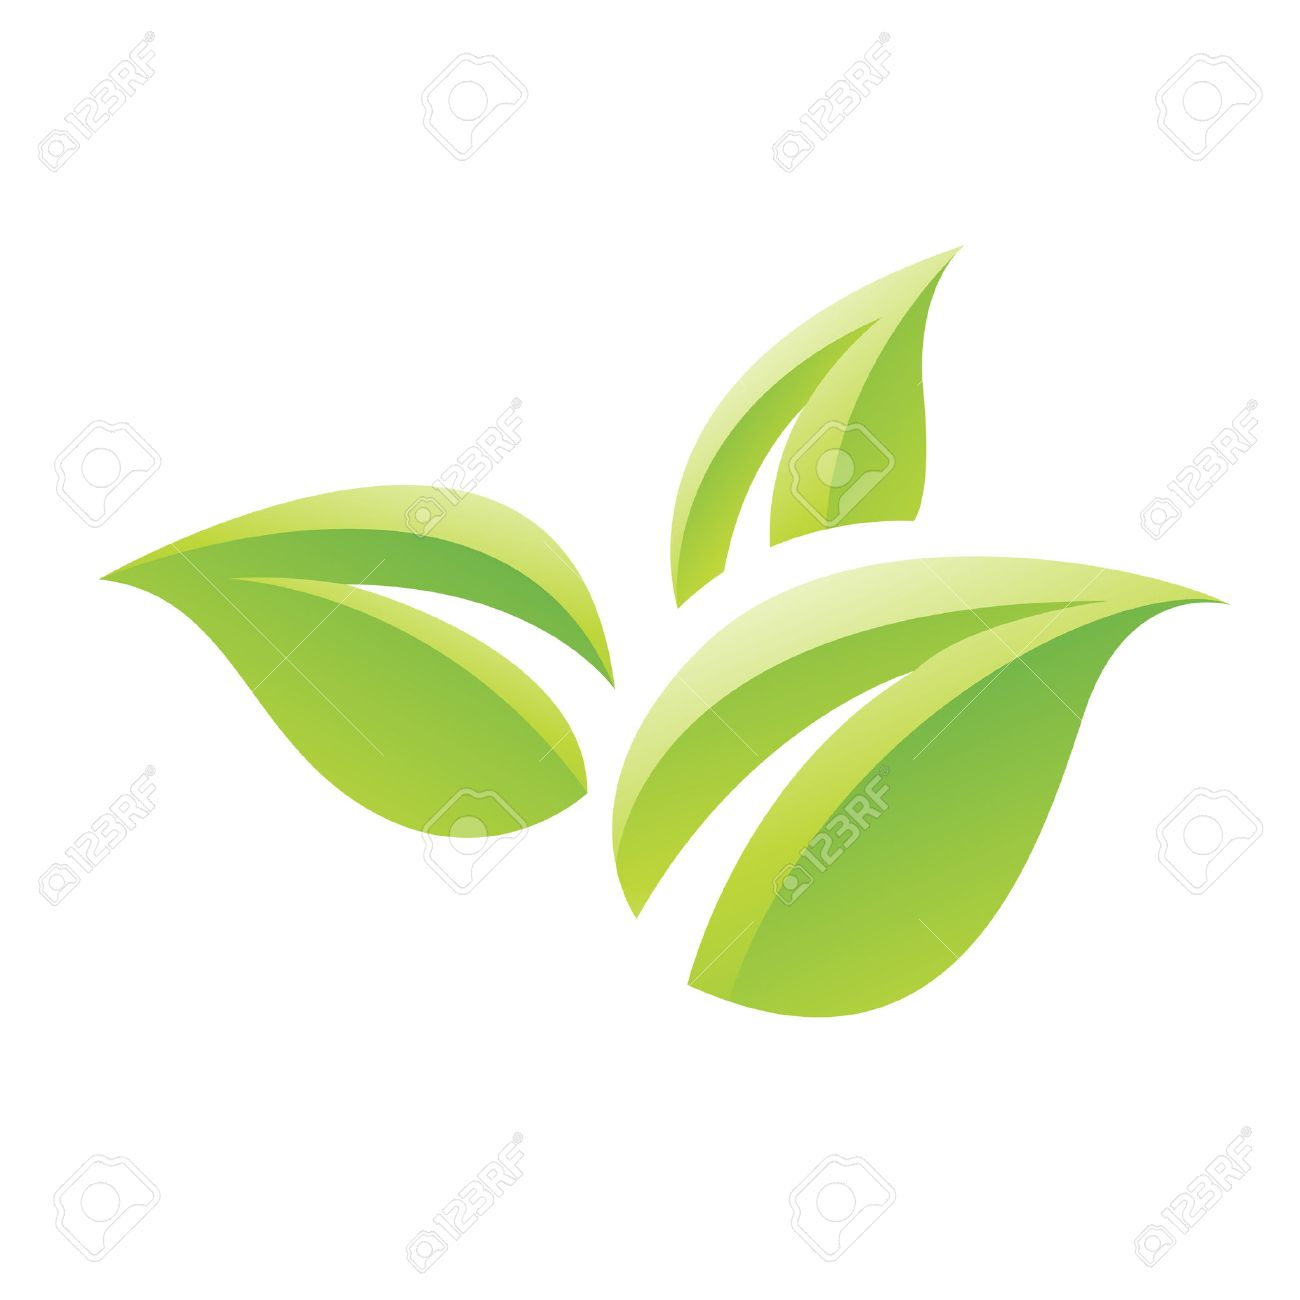 Illustration of Green Glossy Leaves Icon isolated on a white background Stock Vector - 23638035